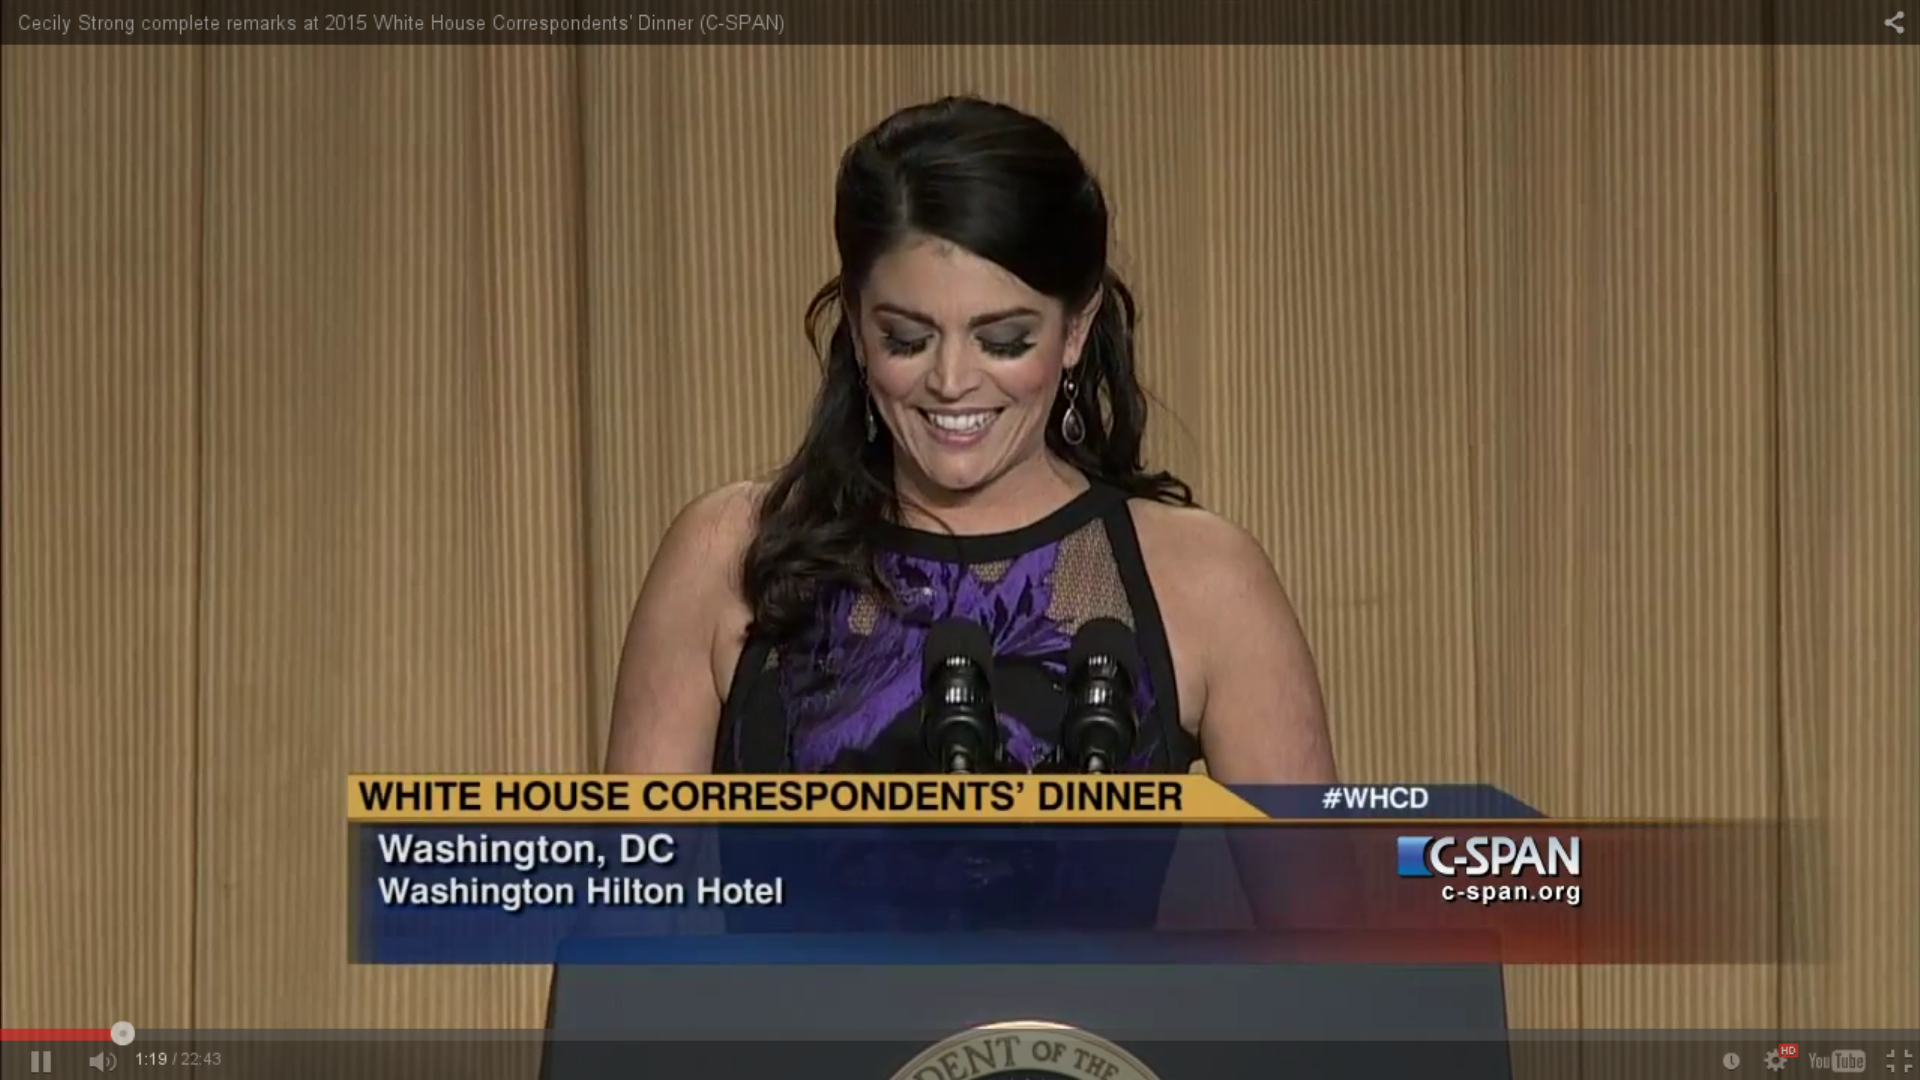 Cecily Strong smiles at White House Correspondents' Dinner